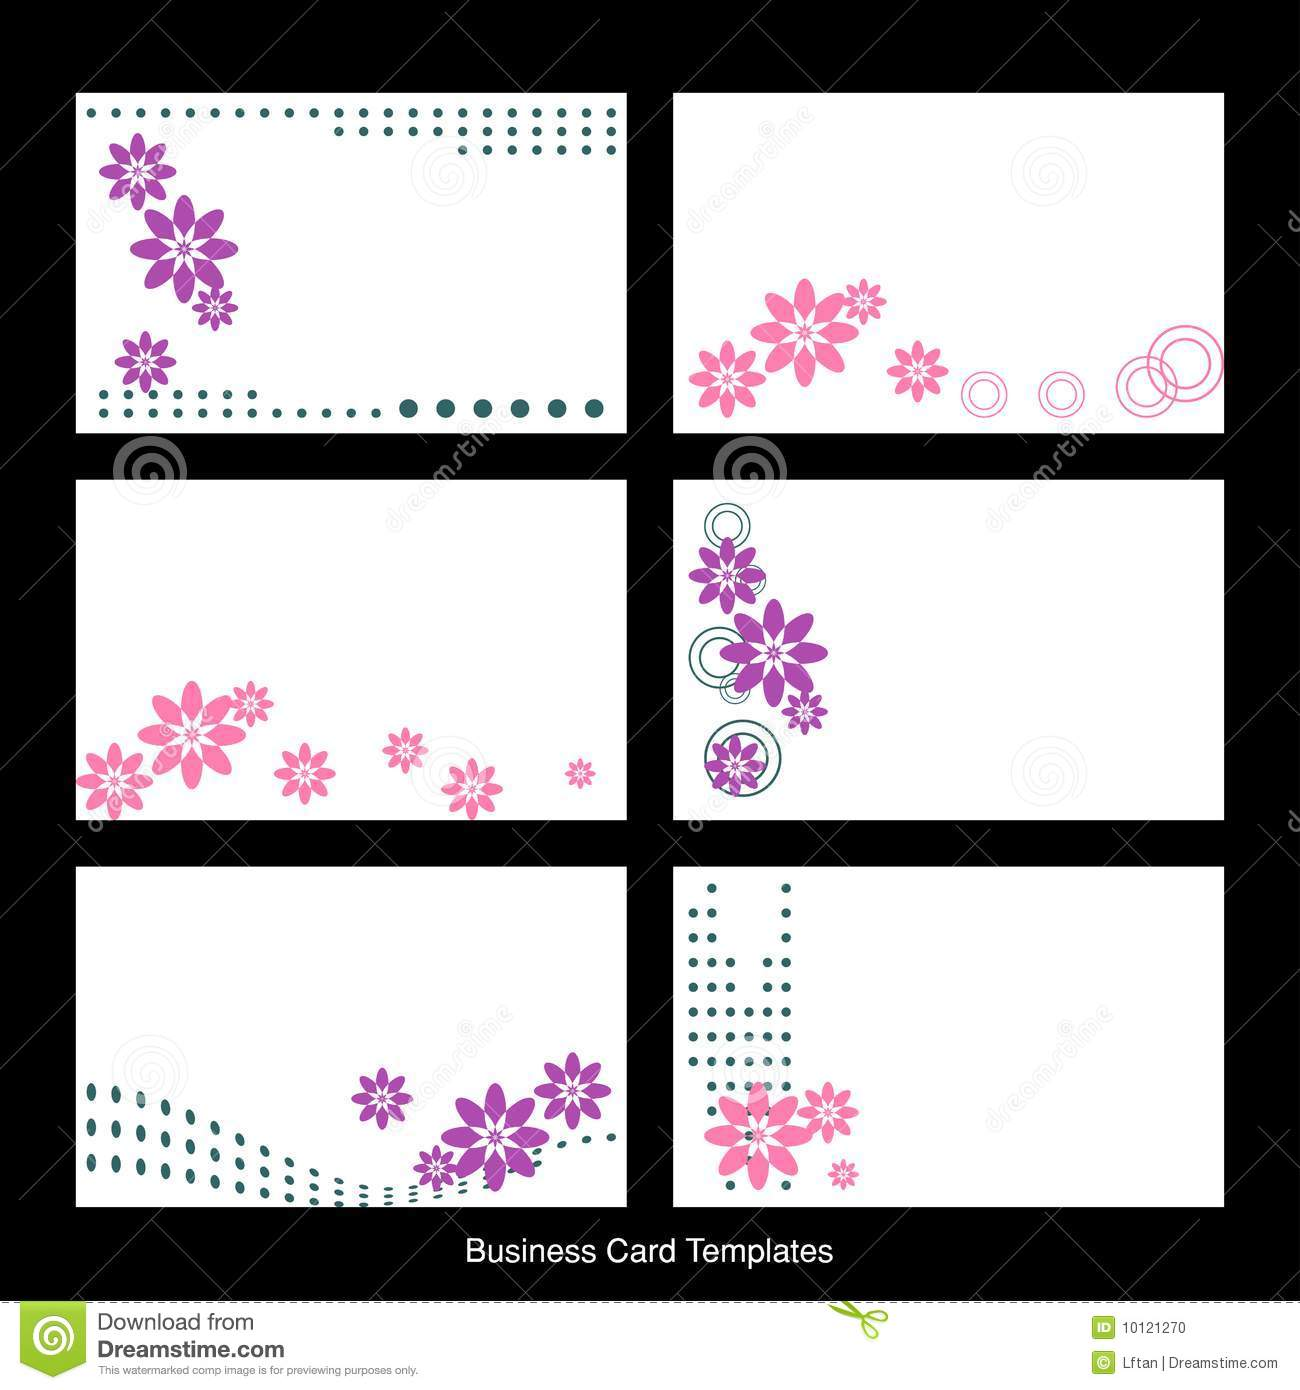 business card templates stock vector illustration of floral 10121270. Black Bedroom Furniture Sets. Home Design Ideas